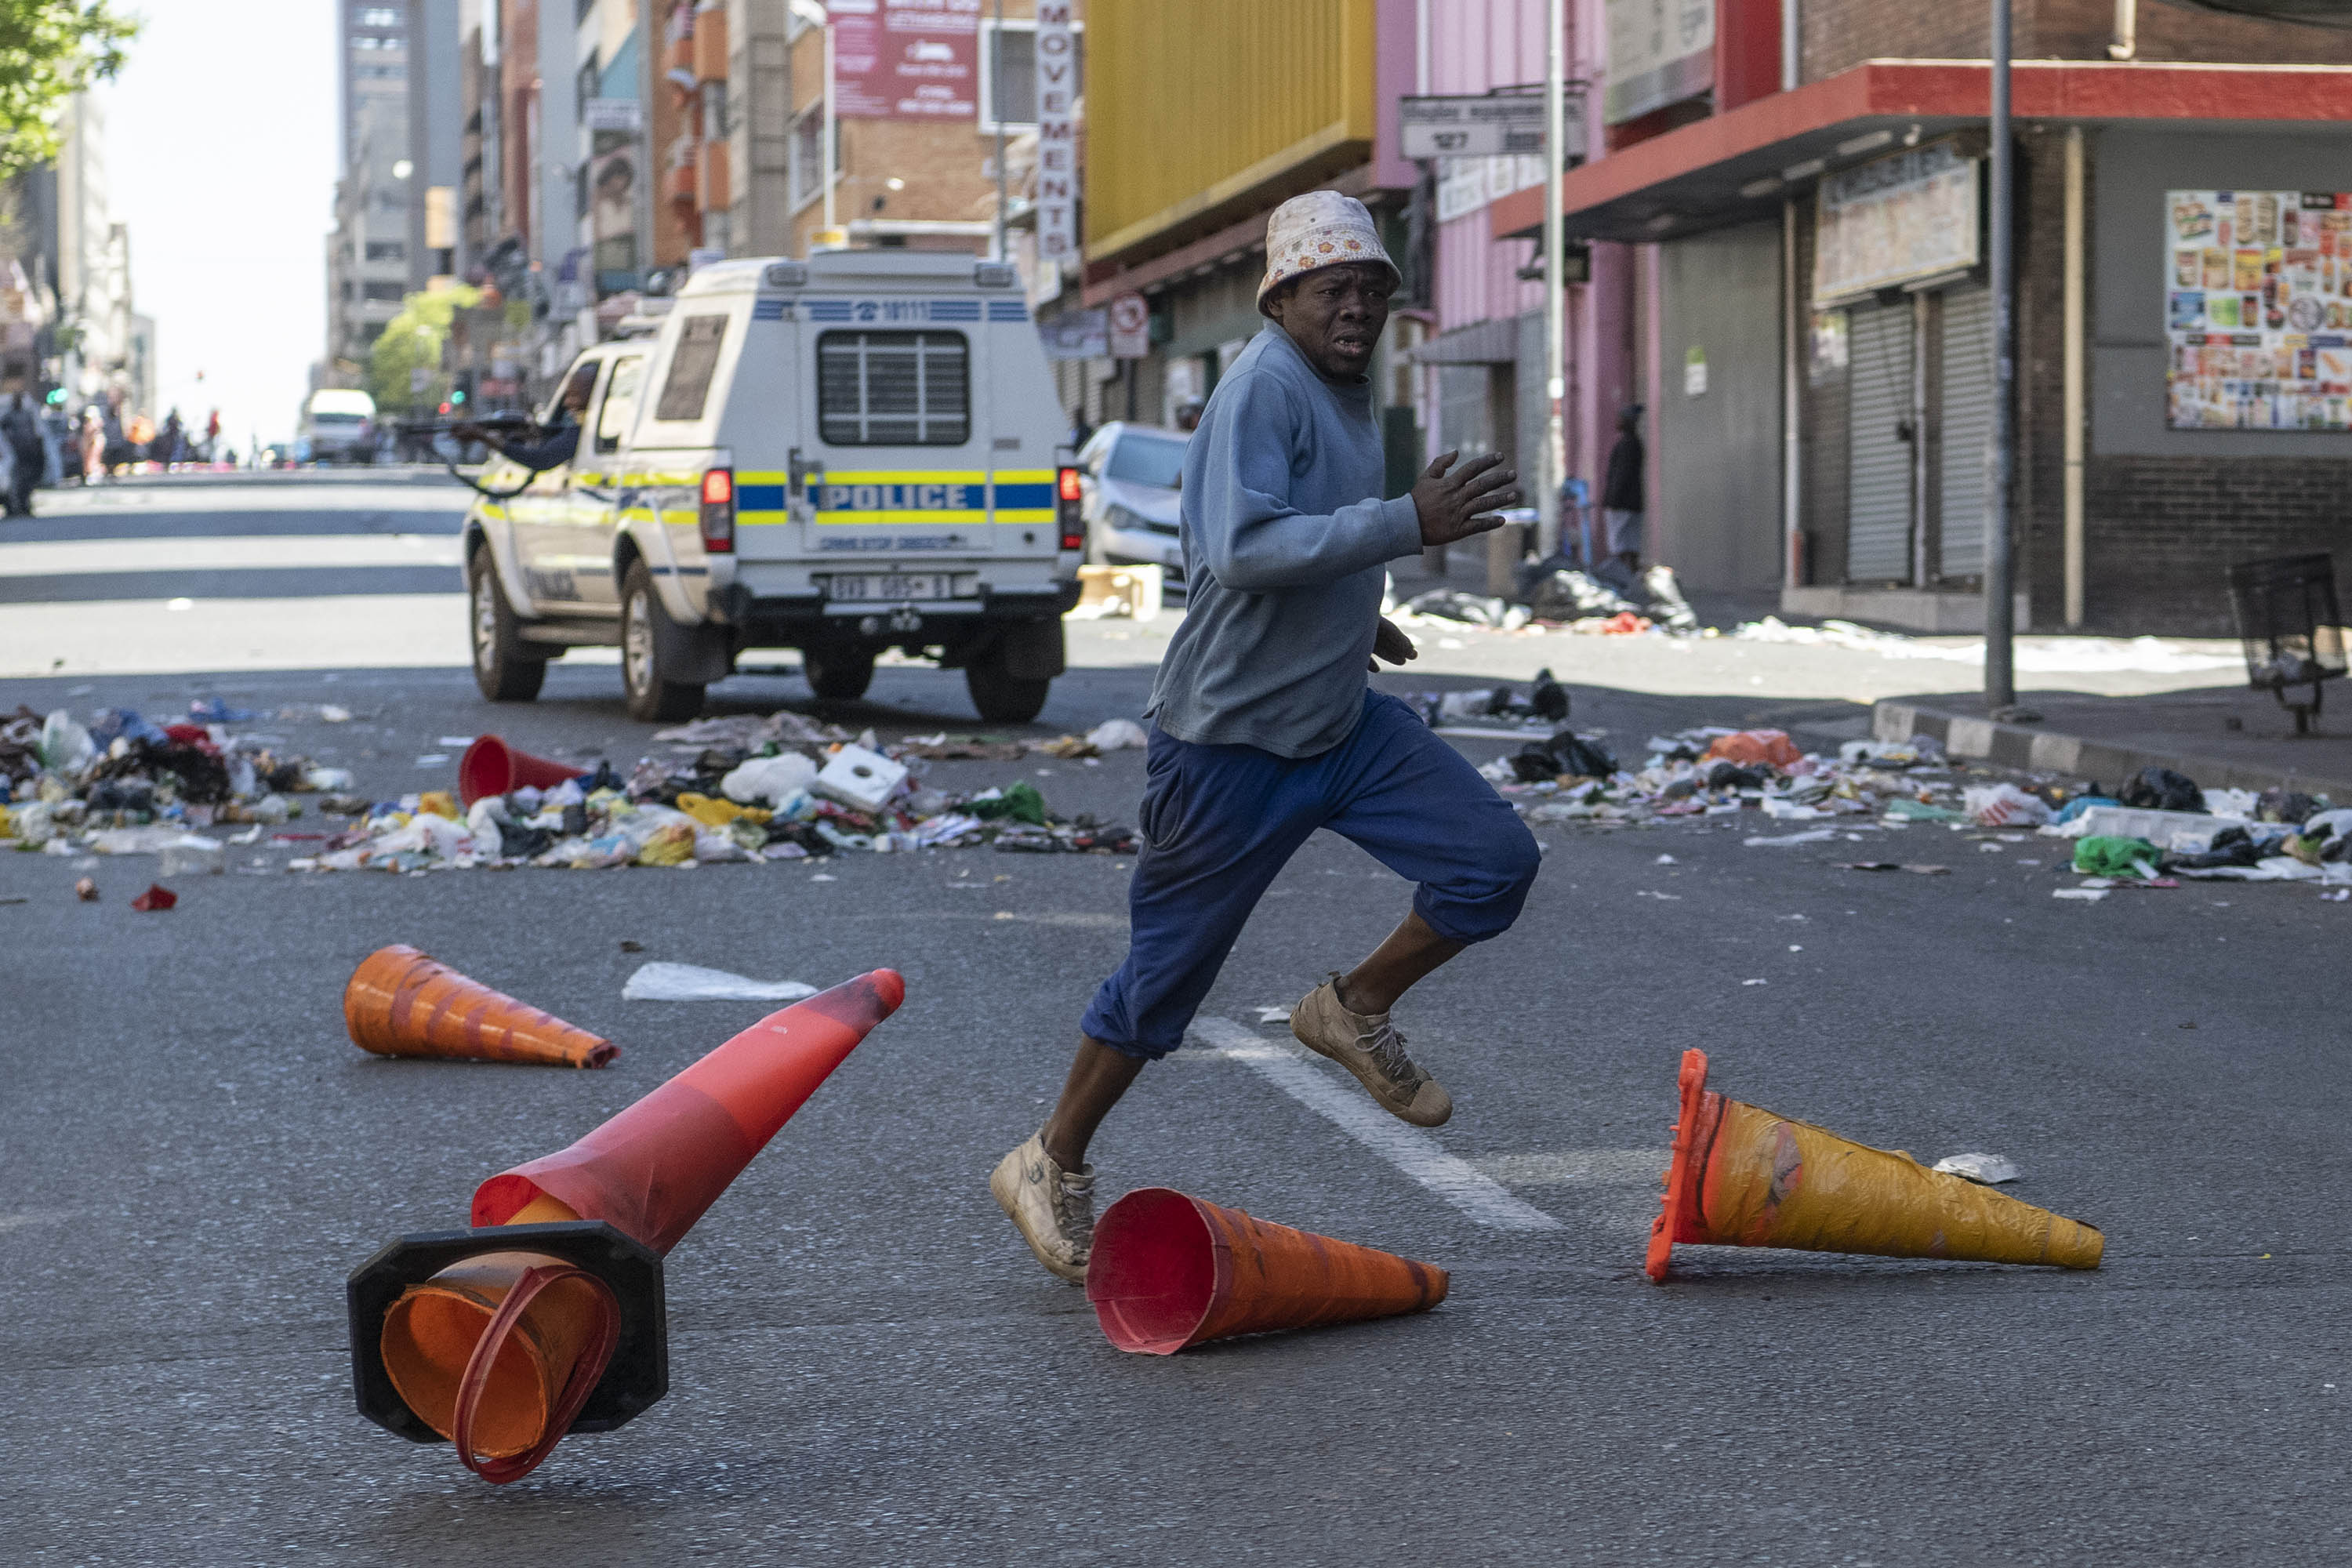 2 September 2019: A man running for cover as police officers attempt to disperse the group looting businesses in Joburg's central business district.